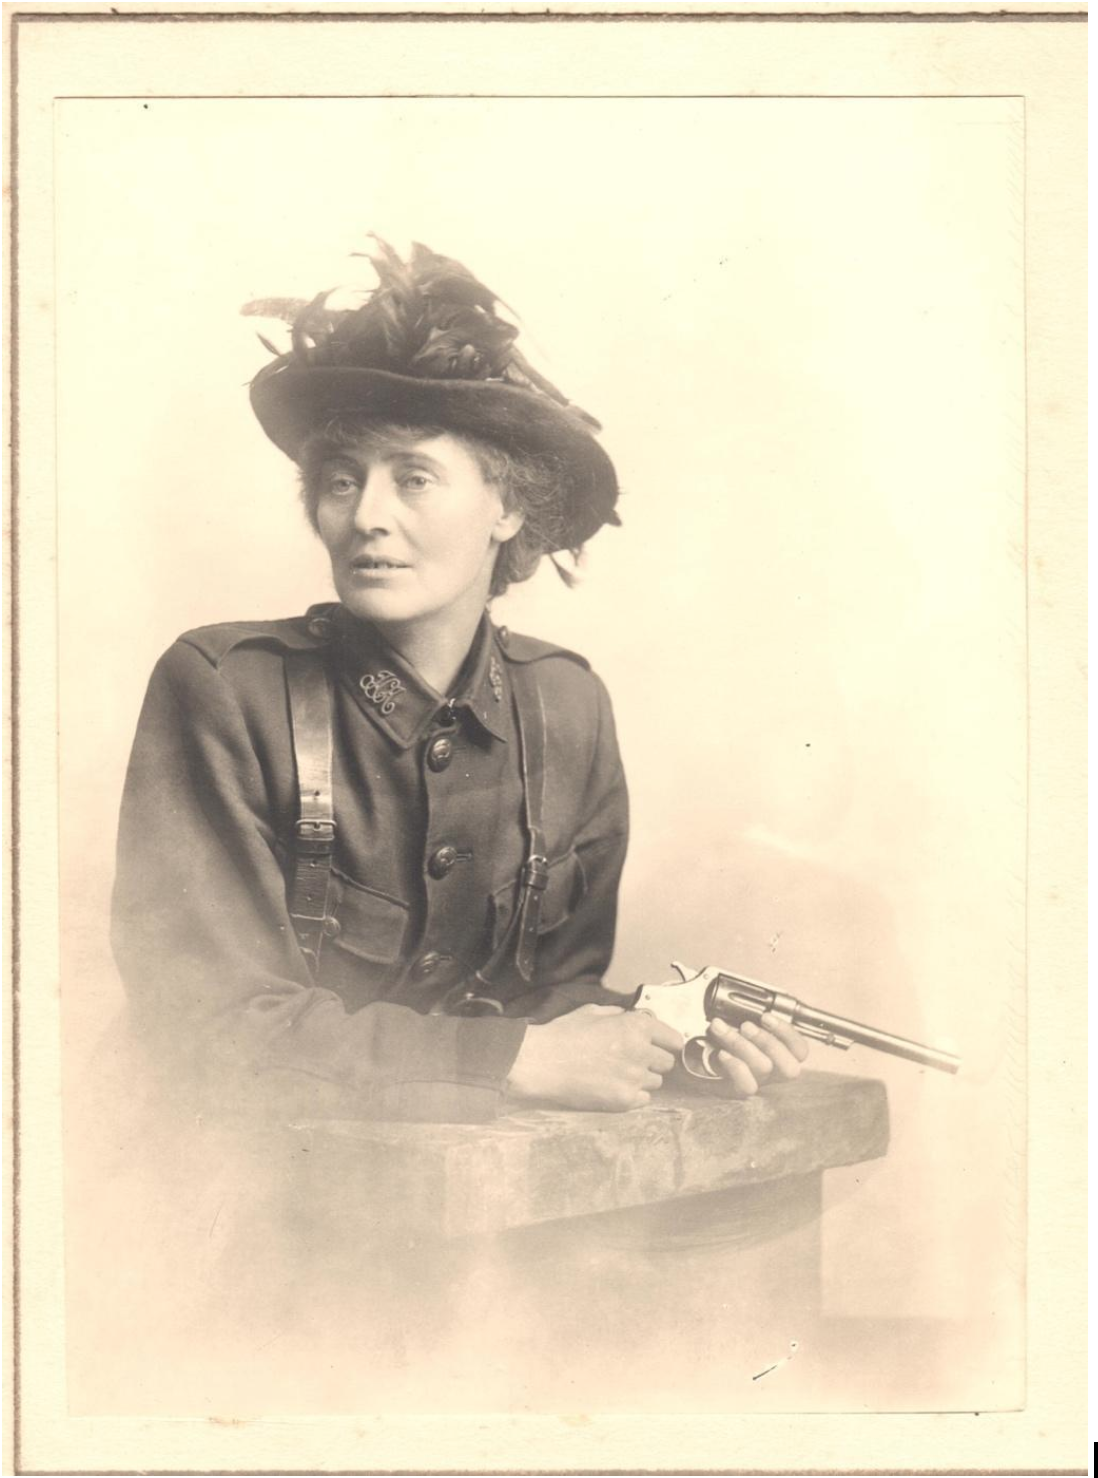 Photograph of Countess Constance Markievicz in the uniform of the Irish Citizen Army, c. 1916. Courtesy of Kilmainham Gaol Museum.